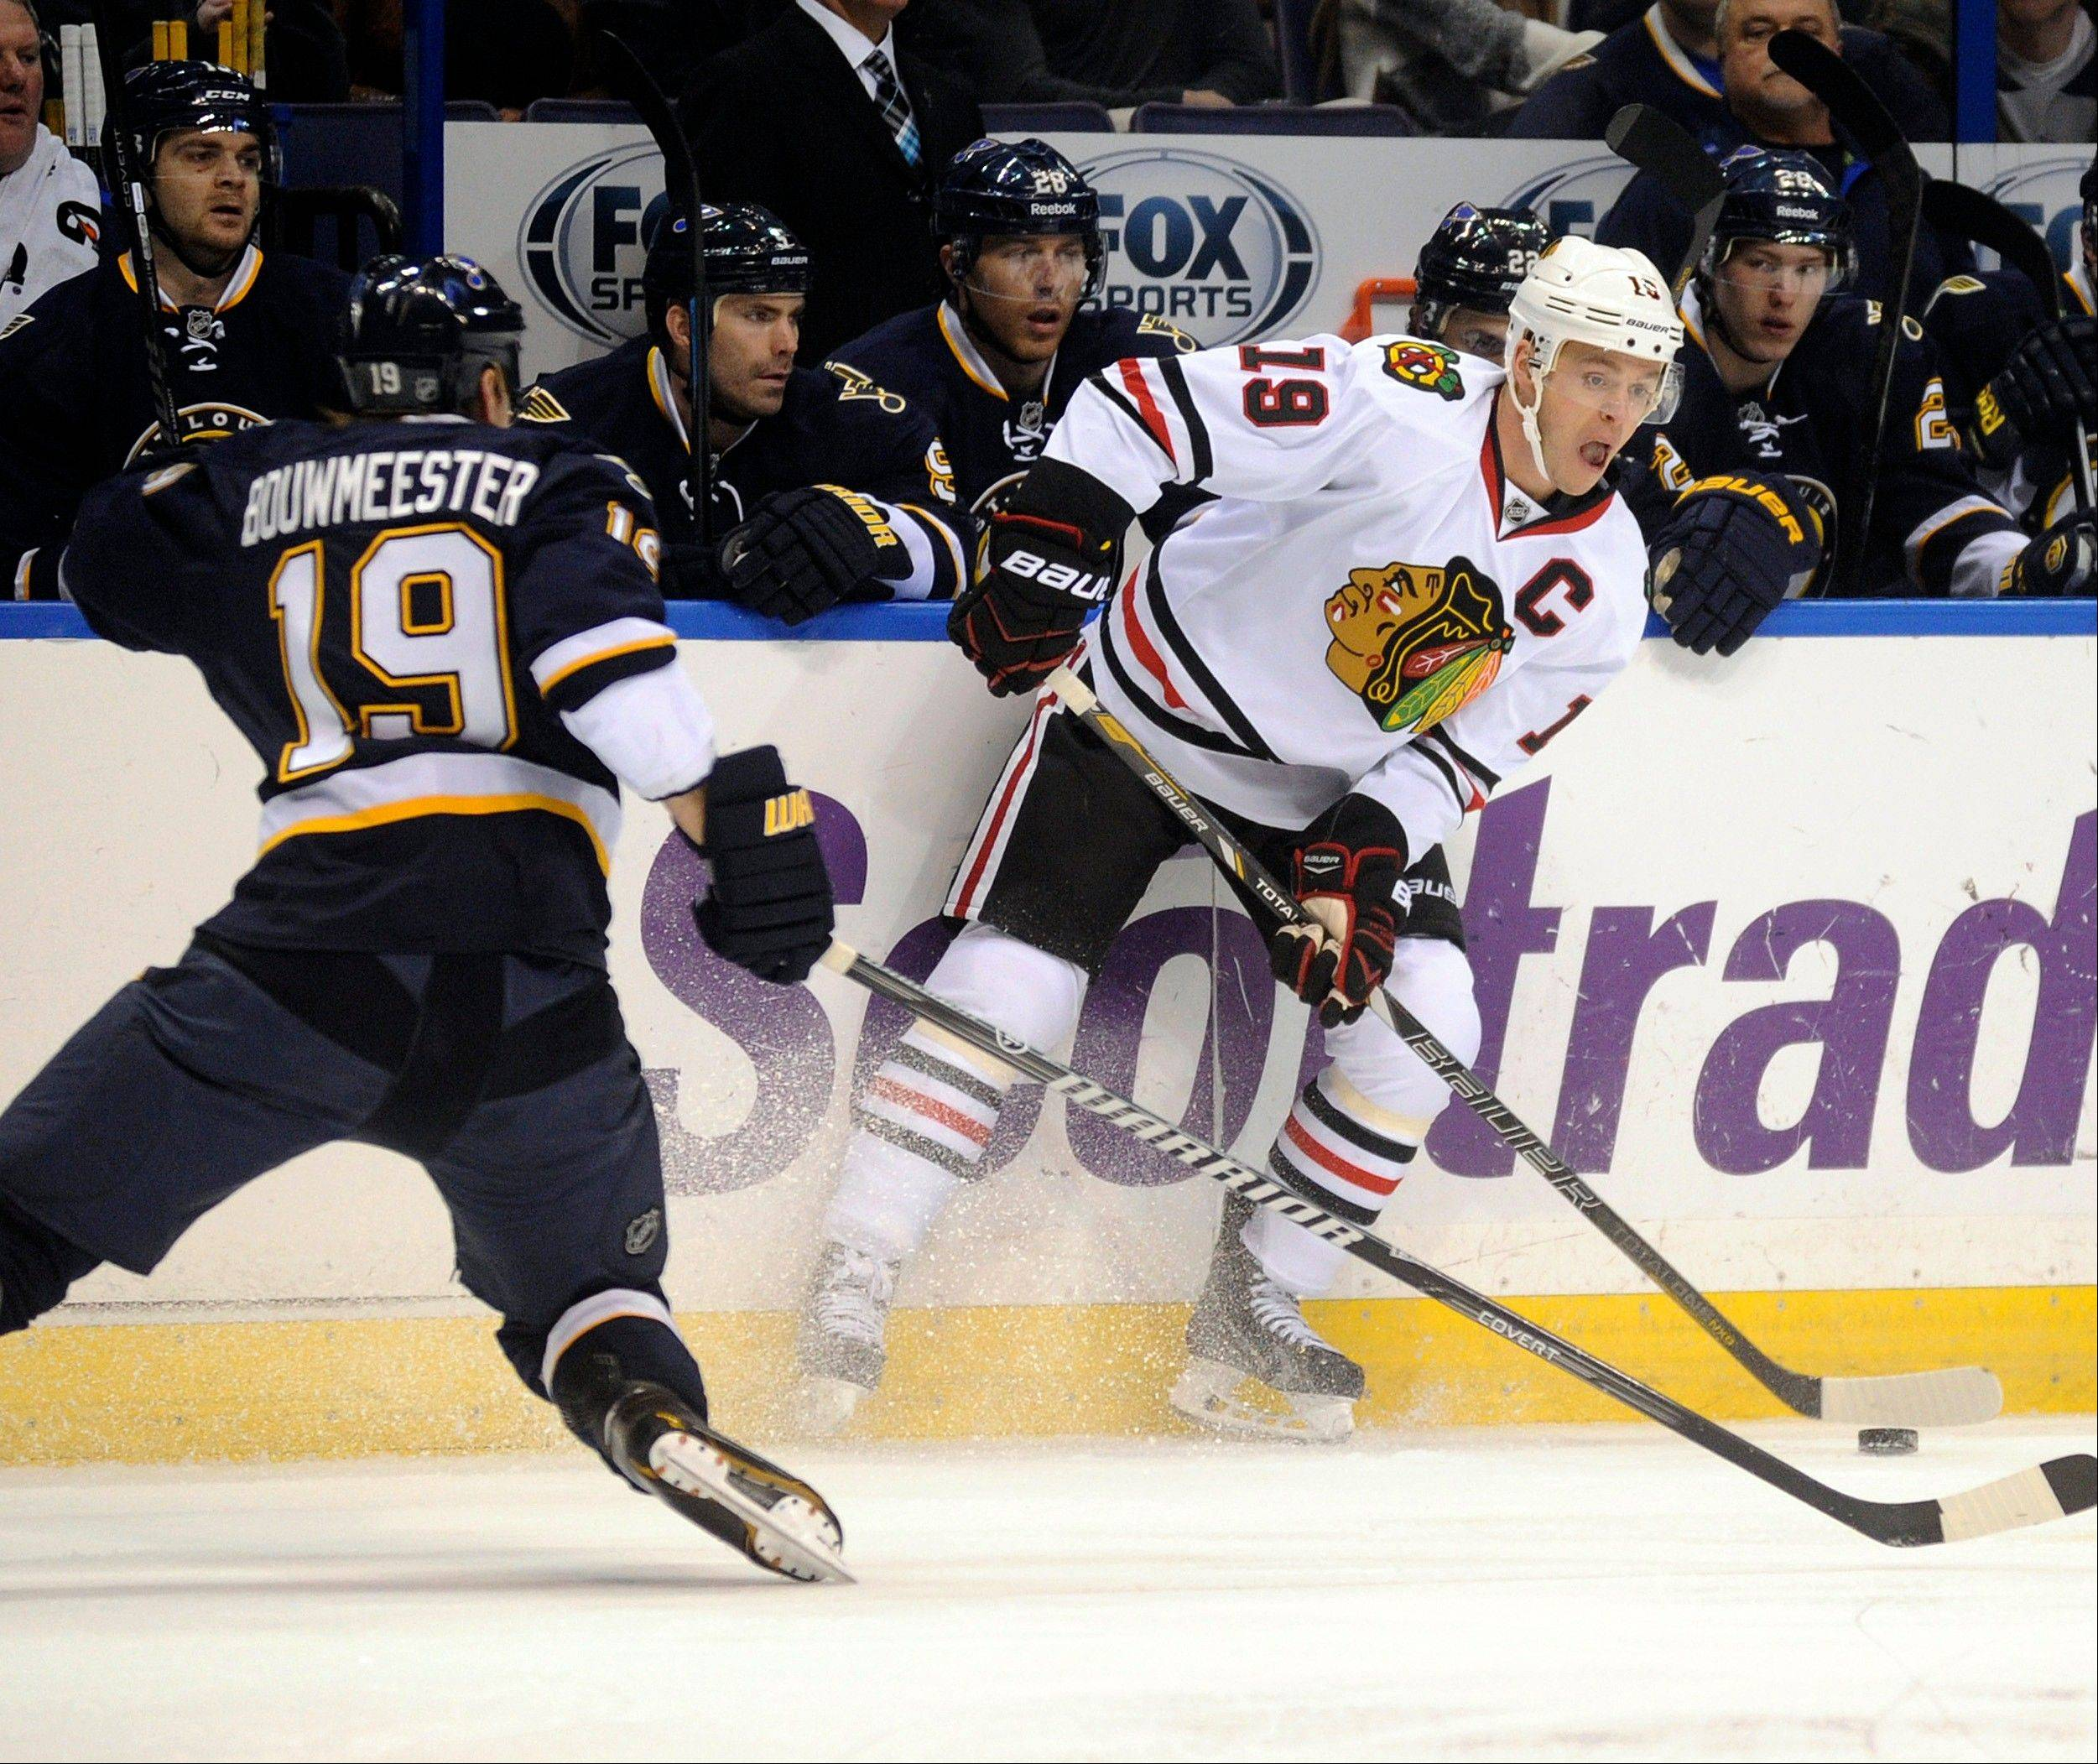 The Chicago Blackhawks' Jonathan Toews, right, looks to pass around the St. Louis Blues' Jay Bouwmeester during the first period Saturday in St. Louis.